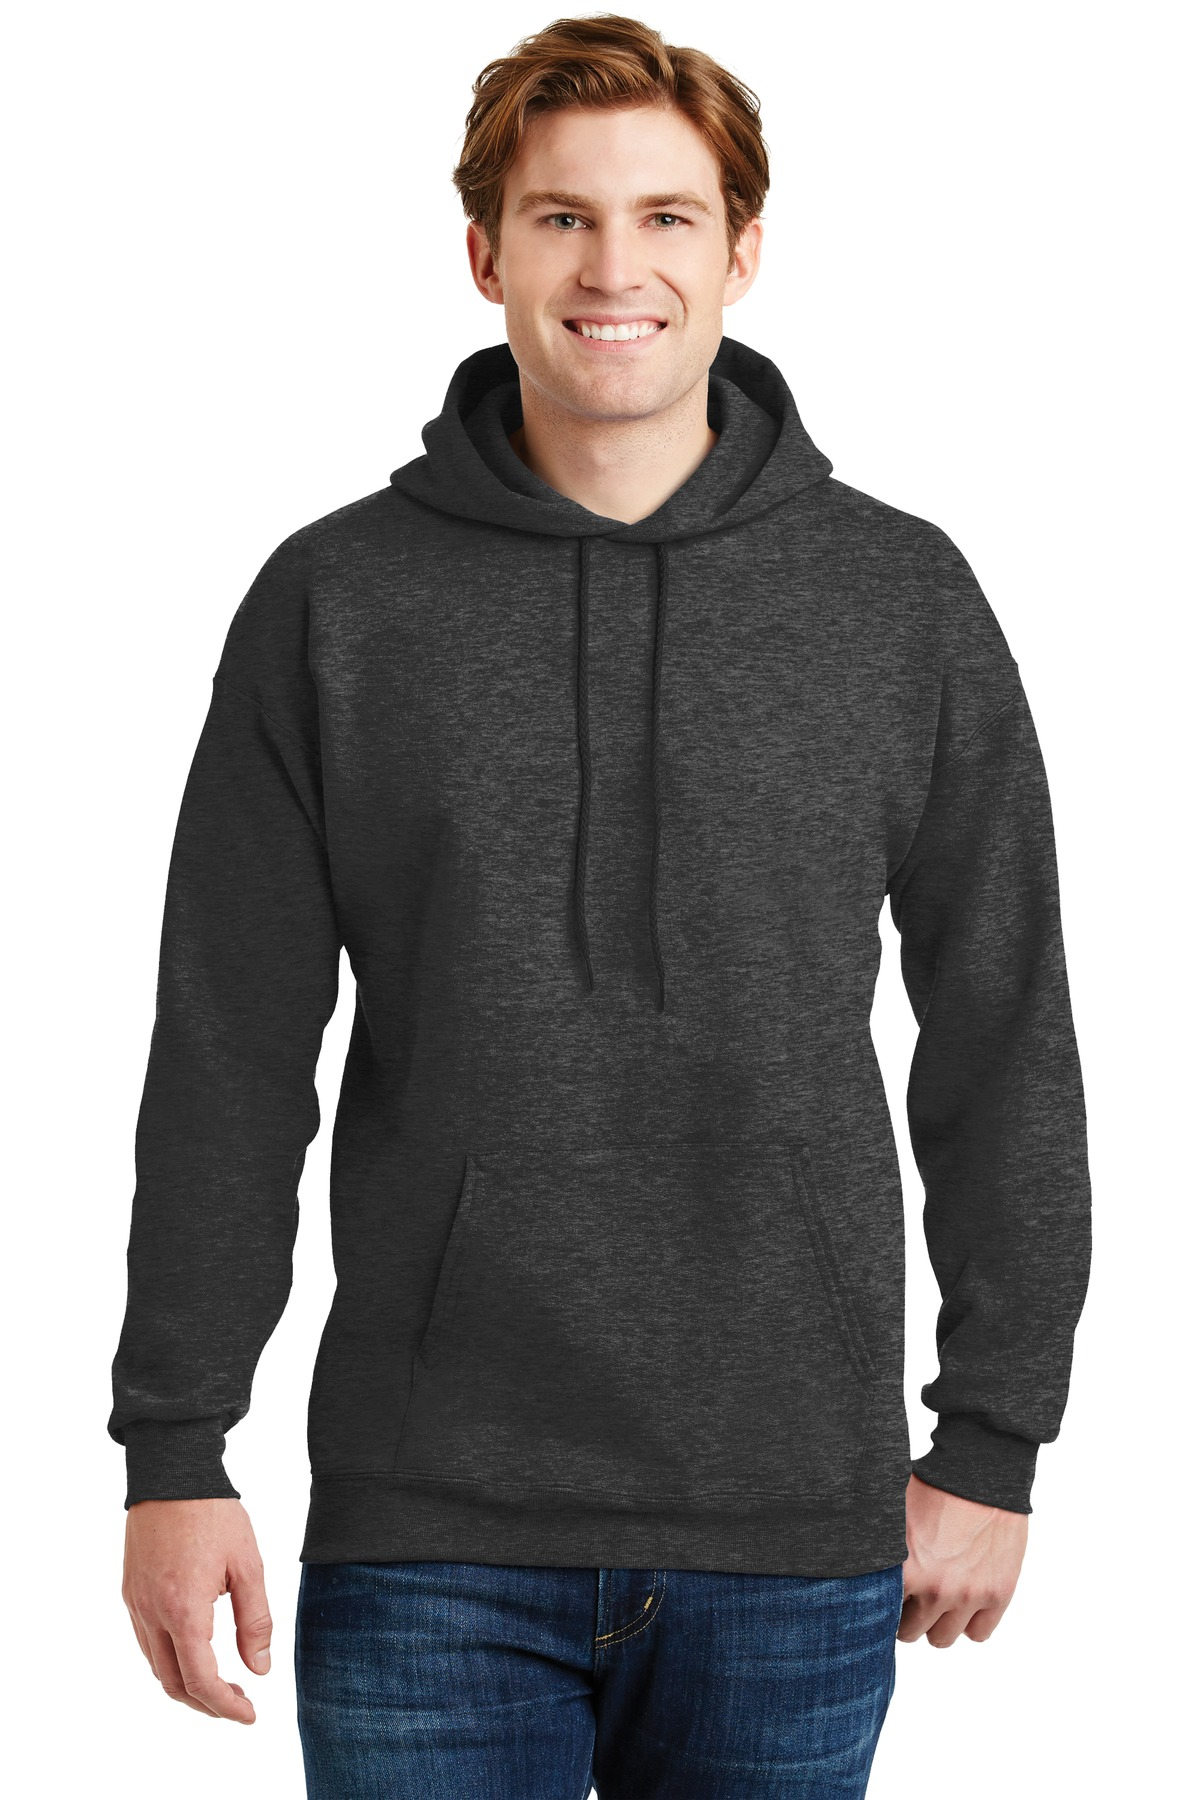 Hanes ®  Ultimate Cotton ®  - Pullover Hooded Sweatshirt.  F170 - Charcoal Heather